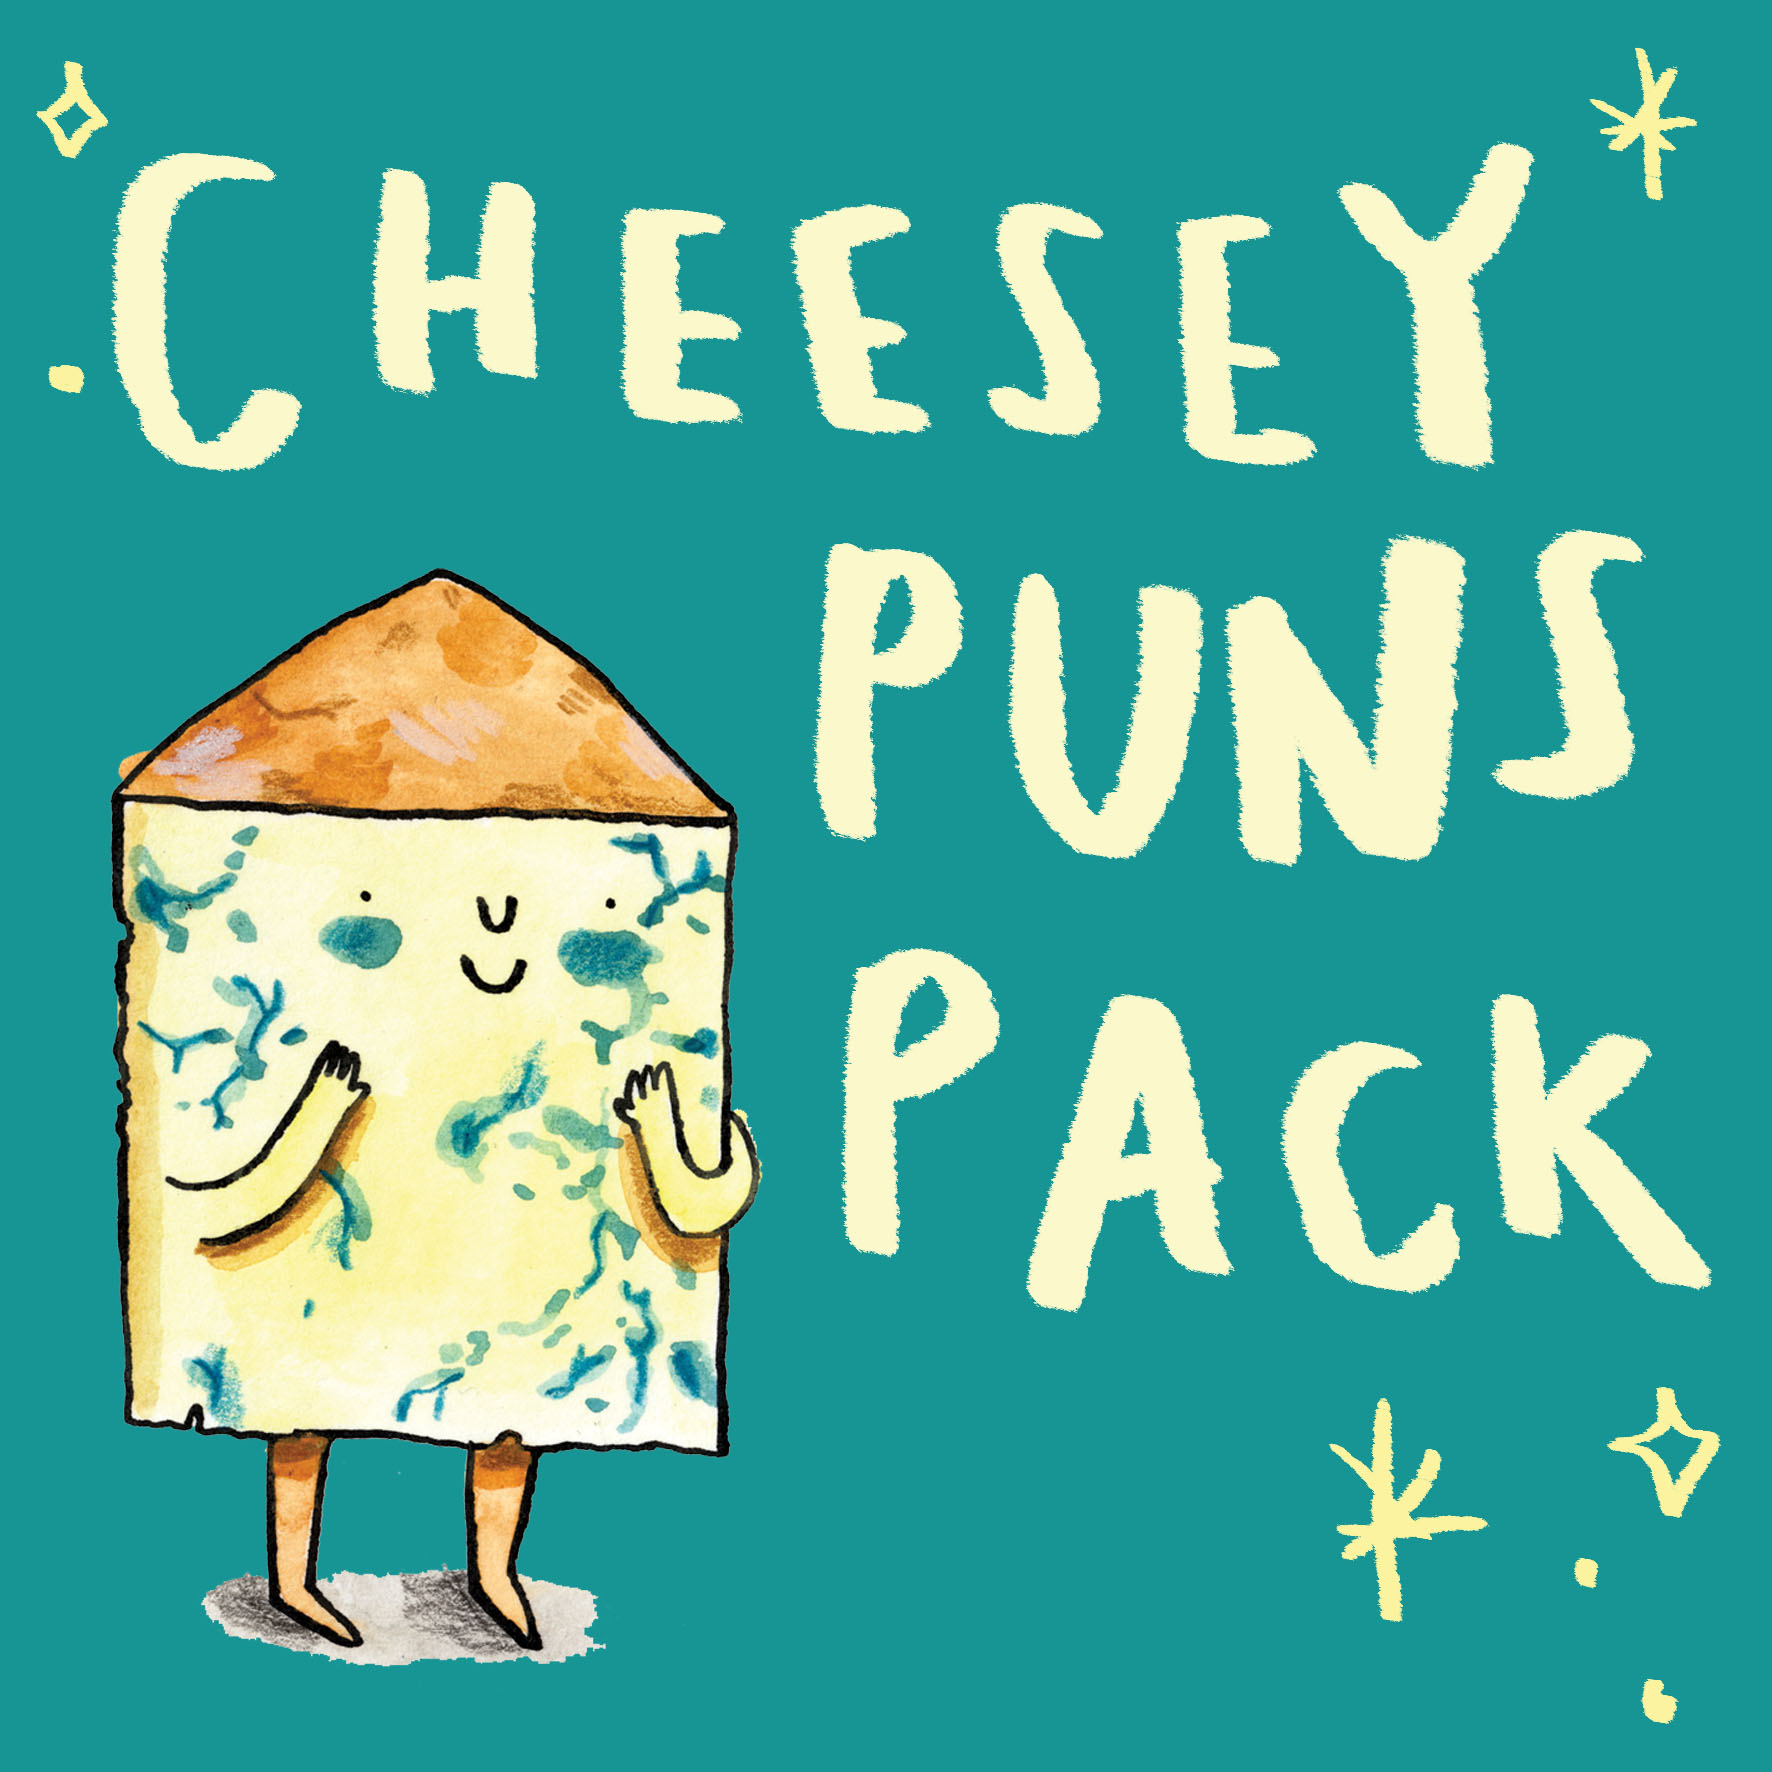 Cheesey-puns